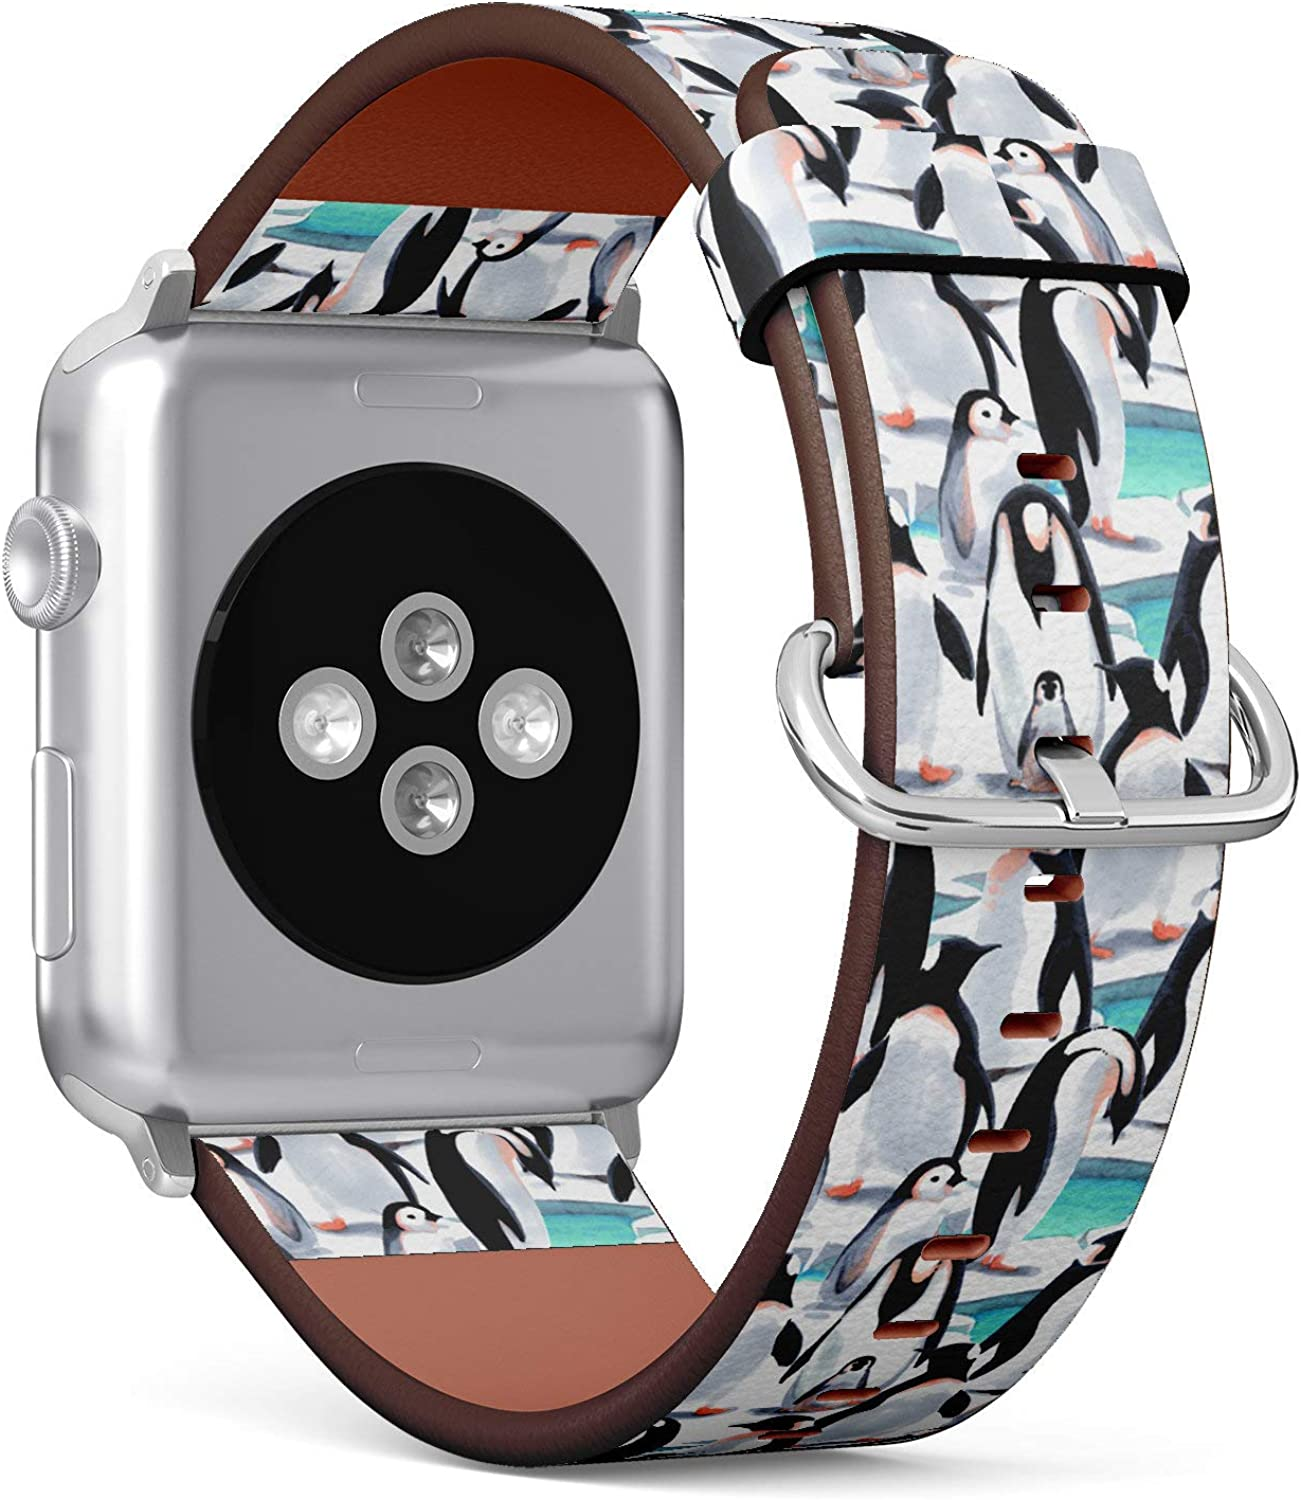 (Watercolor Penguins Pattern) Patterned Leather Wristband Strap Compatible with Apple Watch Series 4/3/2/1 gen,Replacement of iWatch 42mm / 44mm Bands